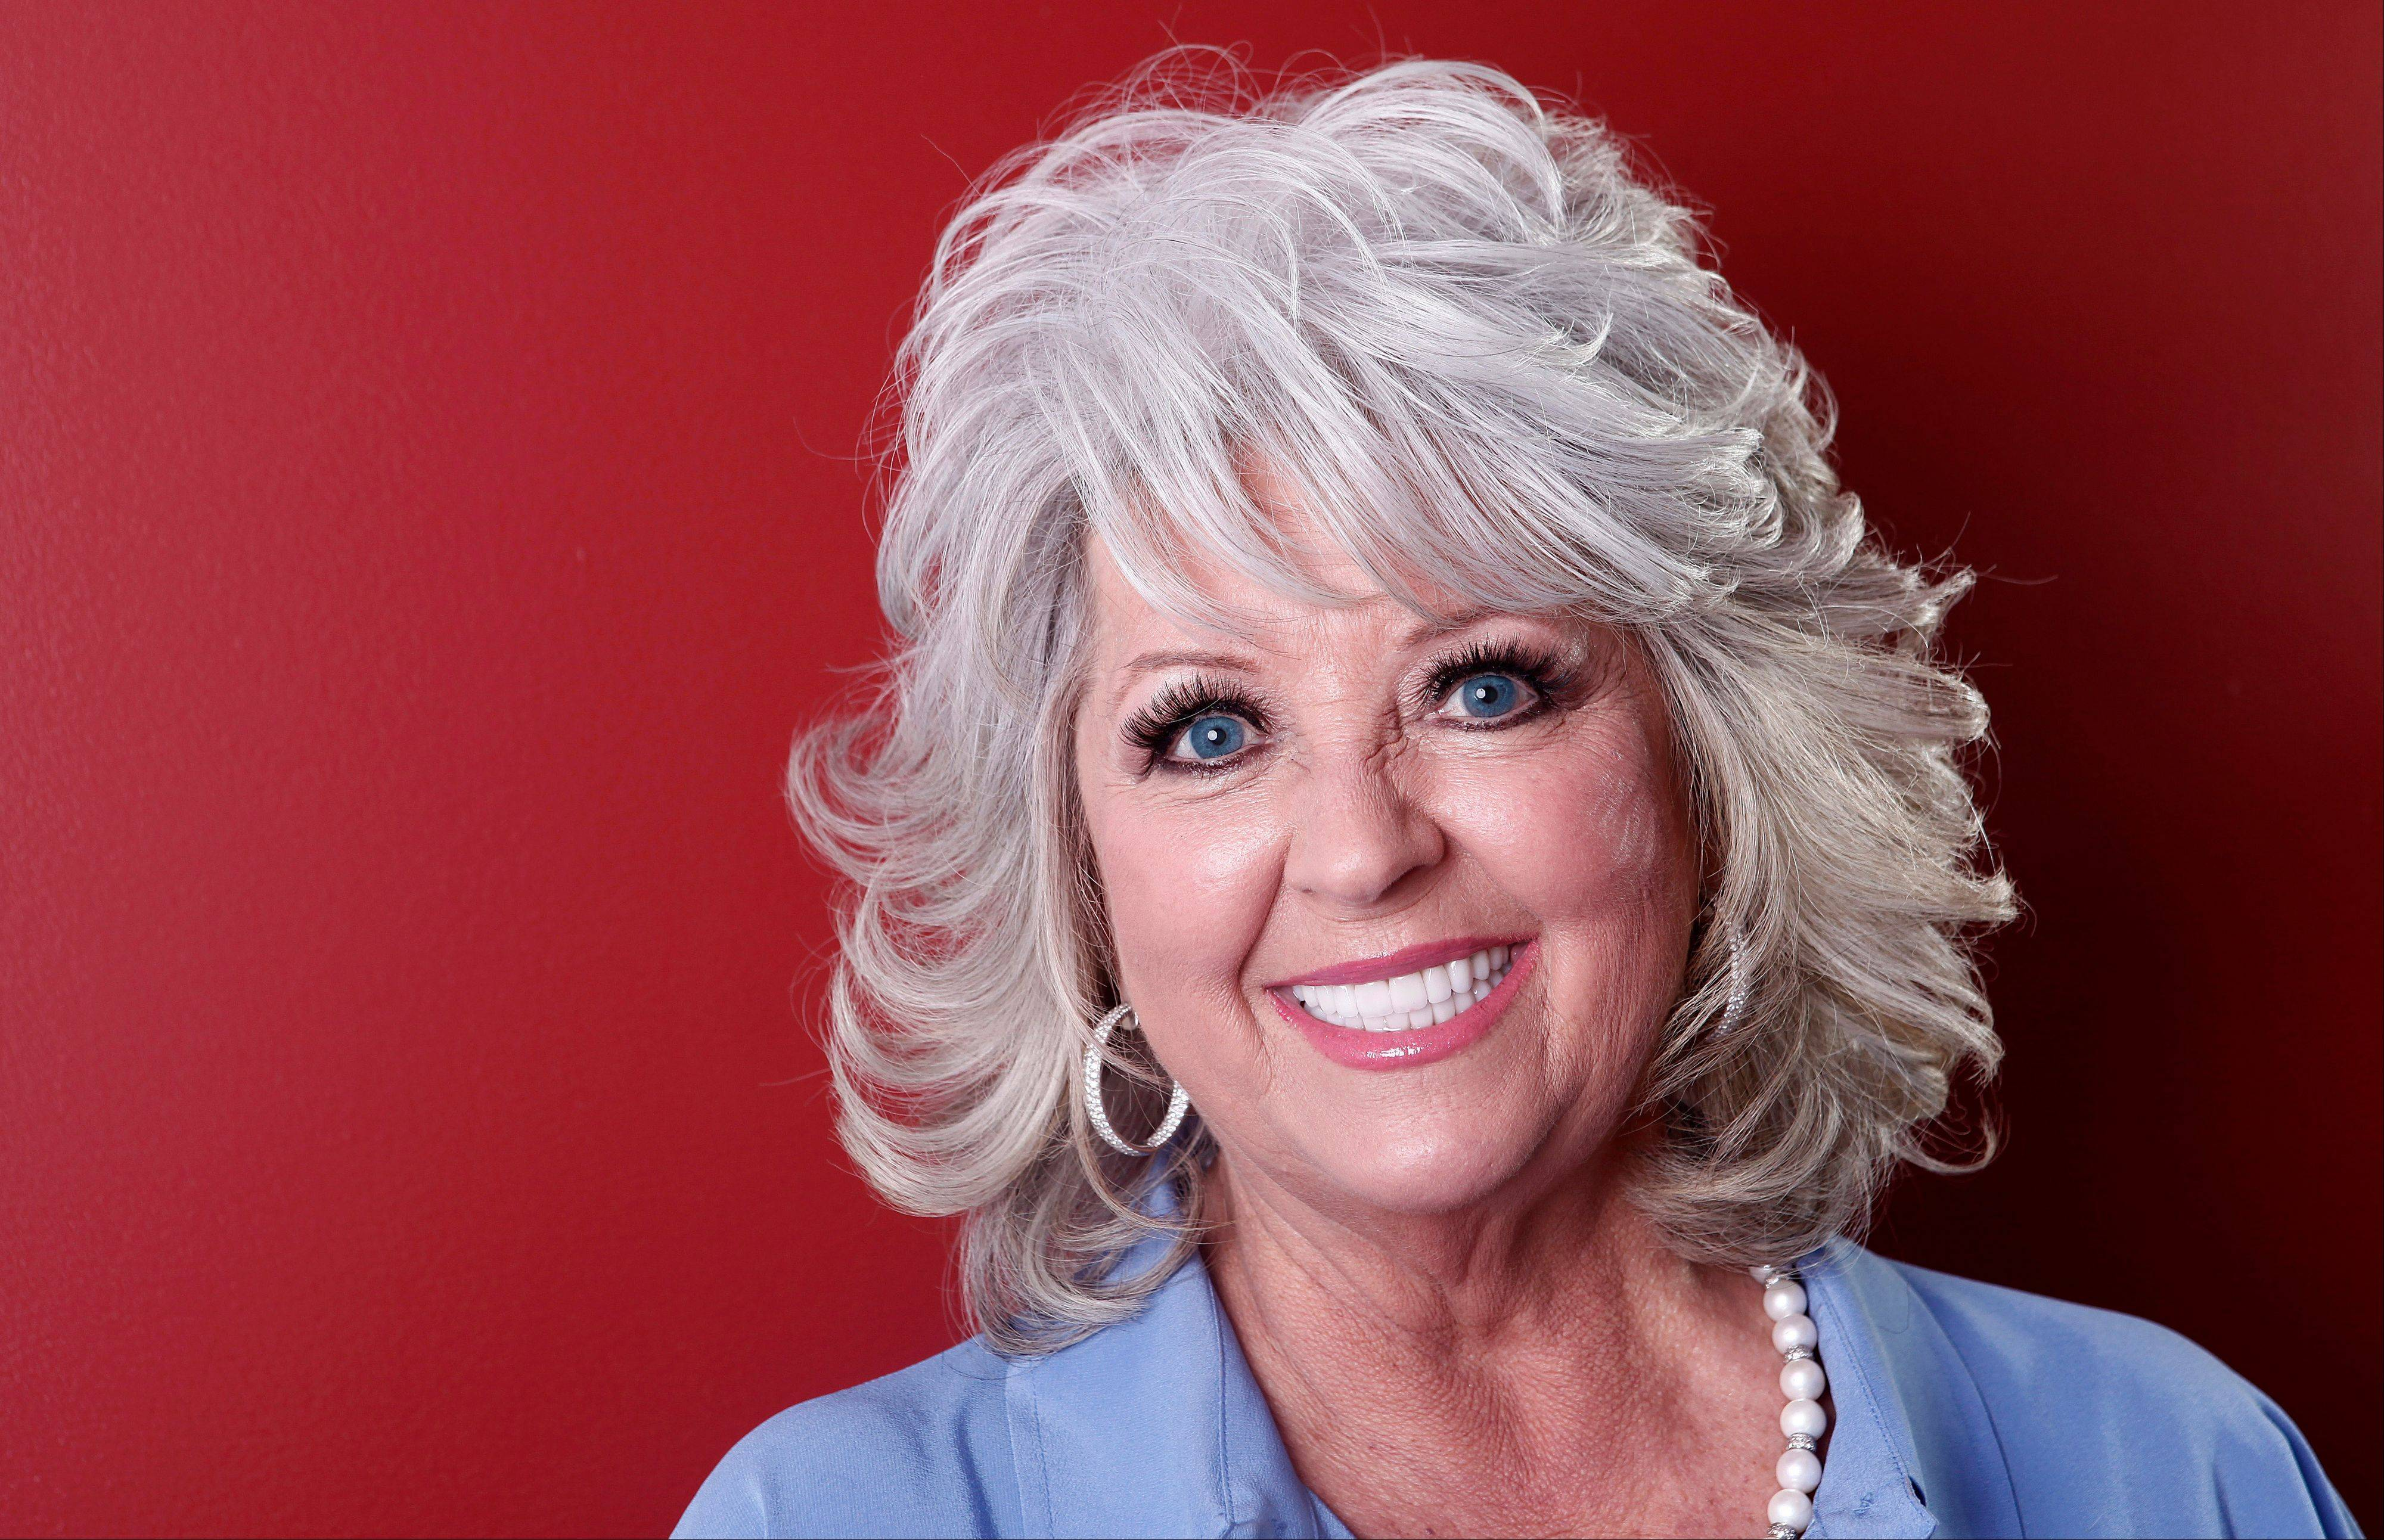 Paula Deen continued to feel the effects of her admission that she used racial slurs, as most recently she ended her business relationship with a longtime agent.